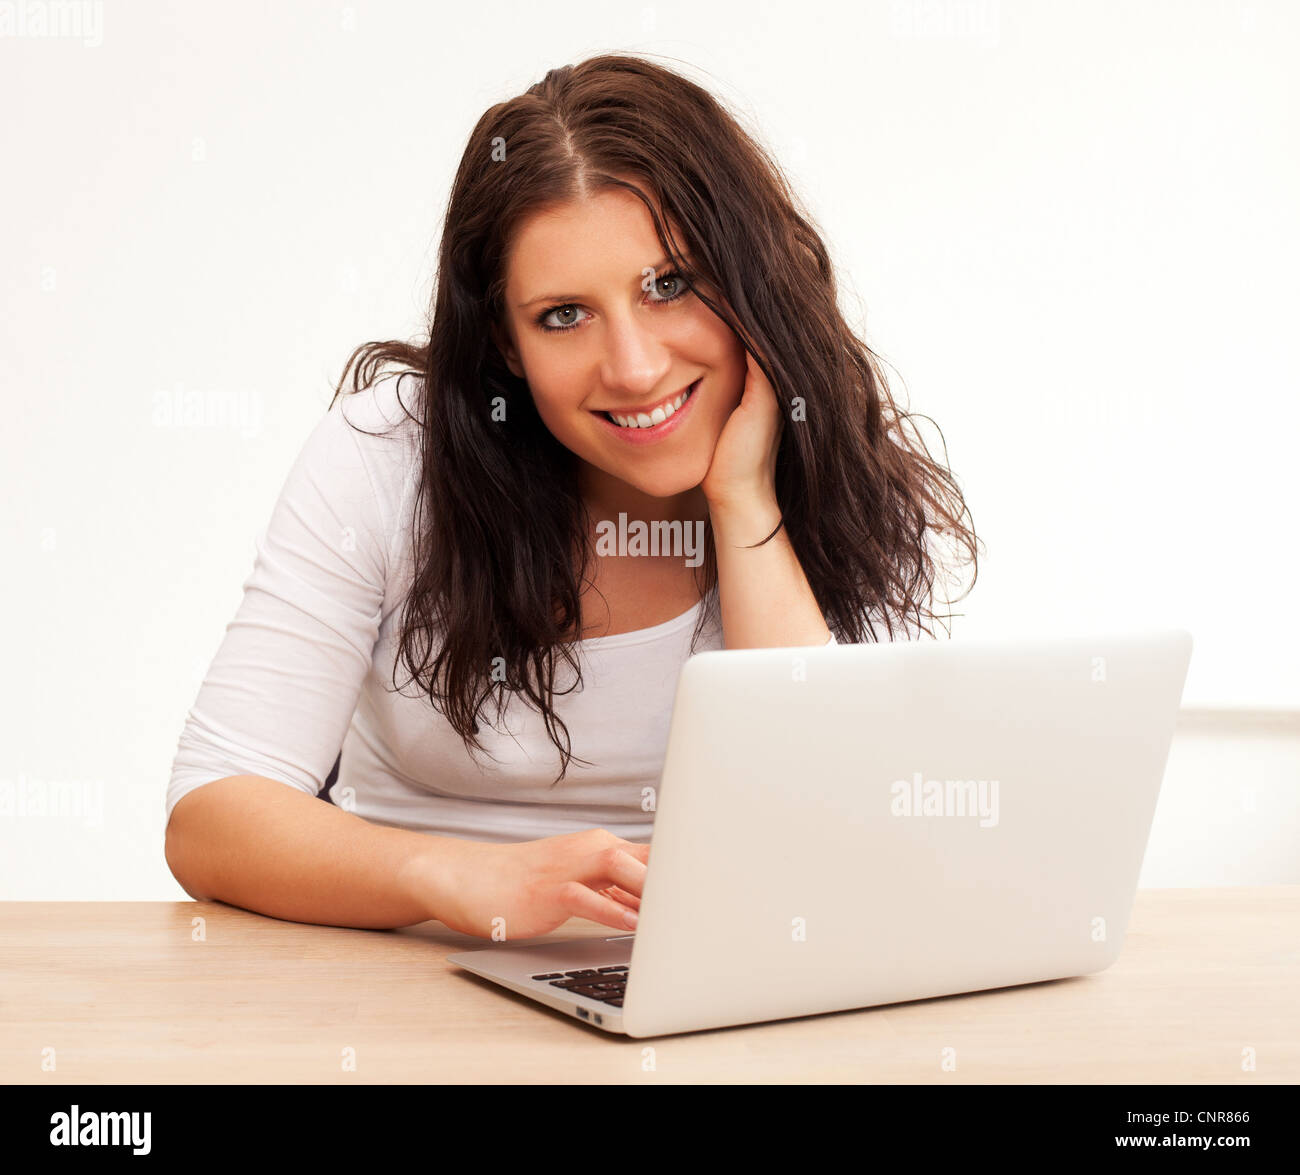 Portrait of a smiling woman using her laptop, isolated on white background Stock Photo